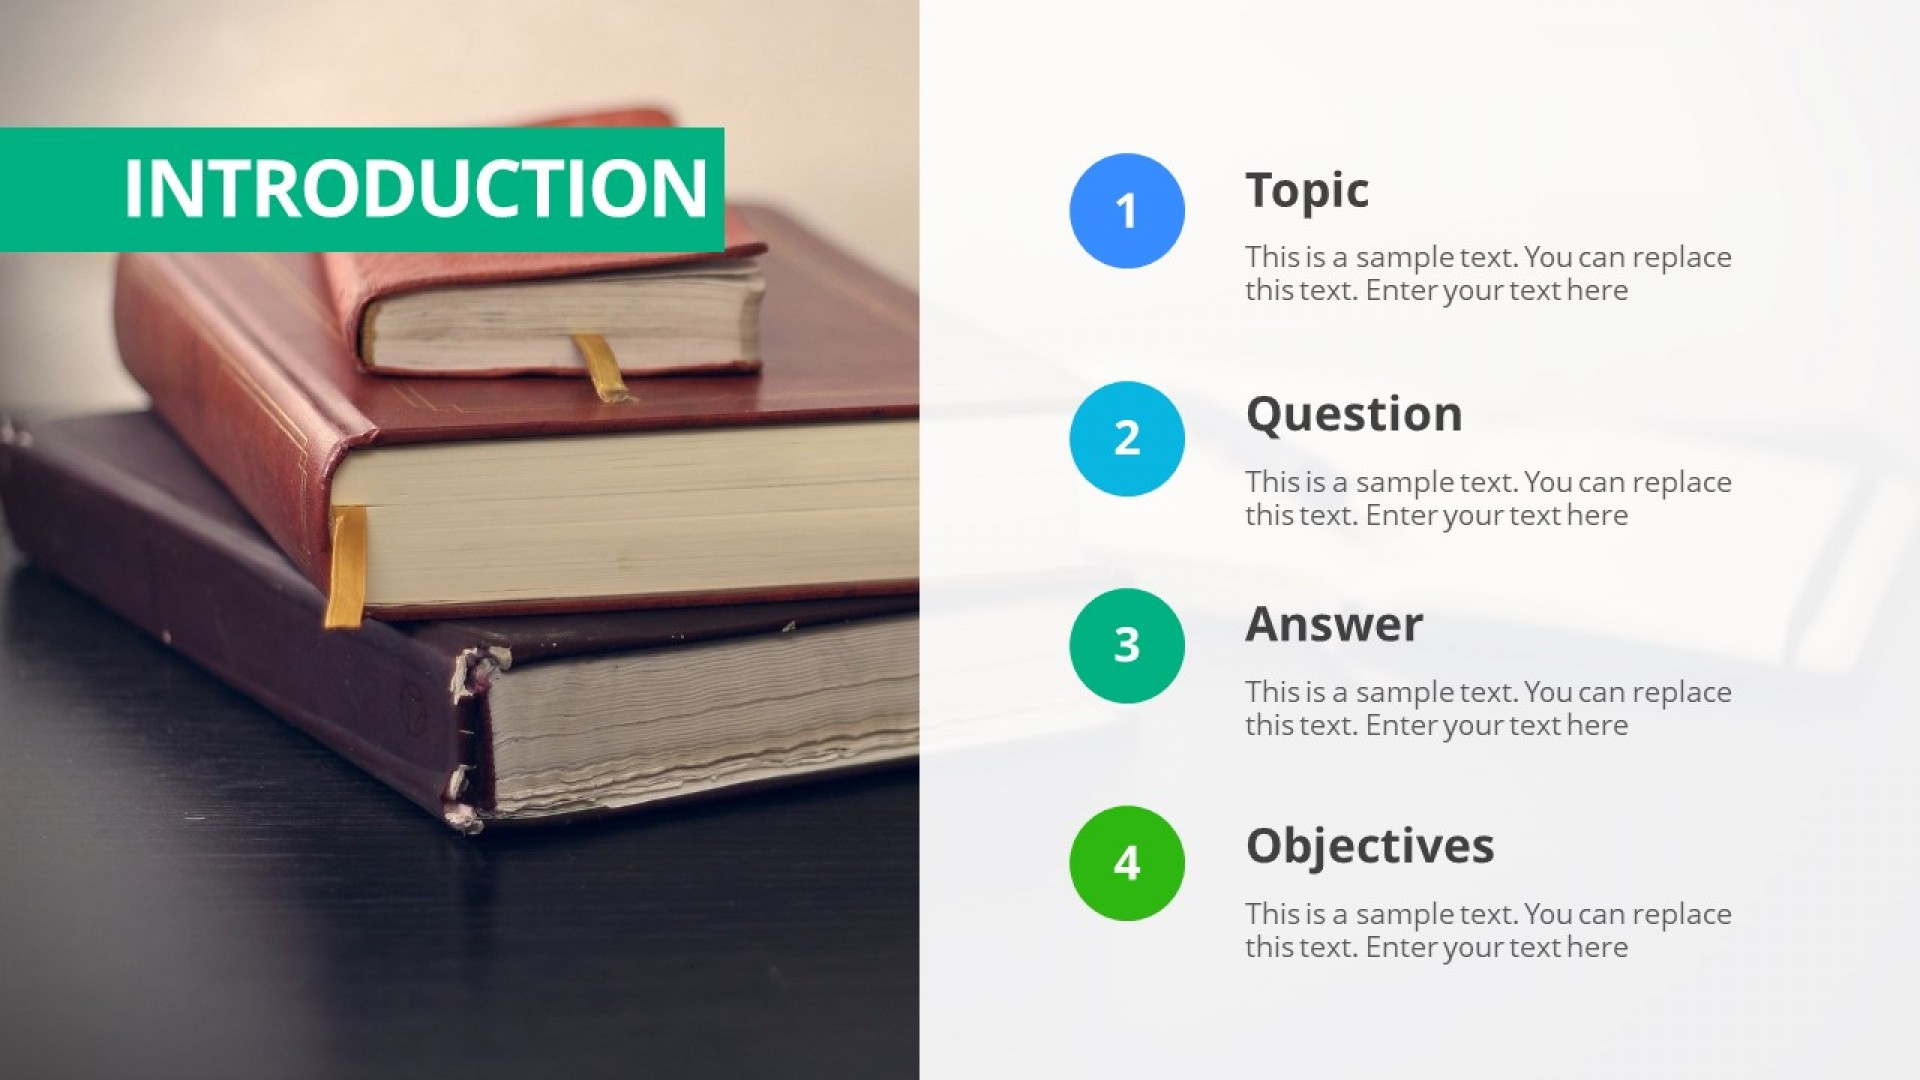 018 Research Paper Thesis Powerpoint Template 16x9 Outline Awesome For Of Ppt 1920